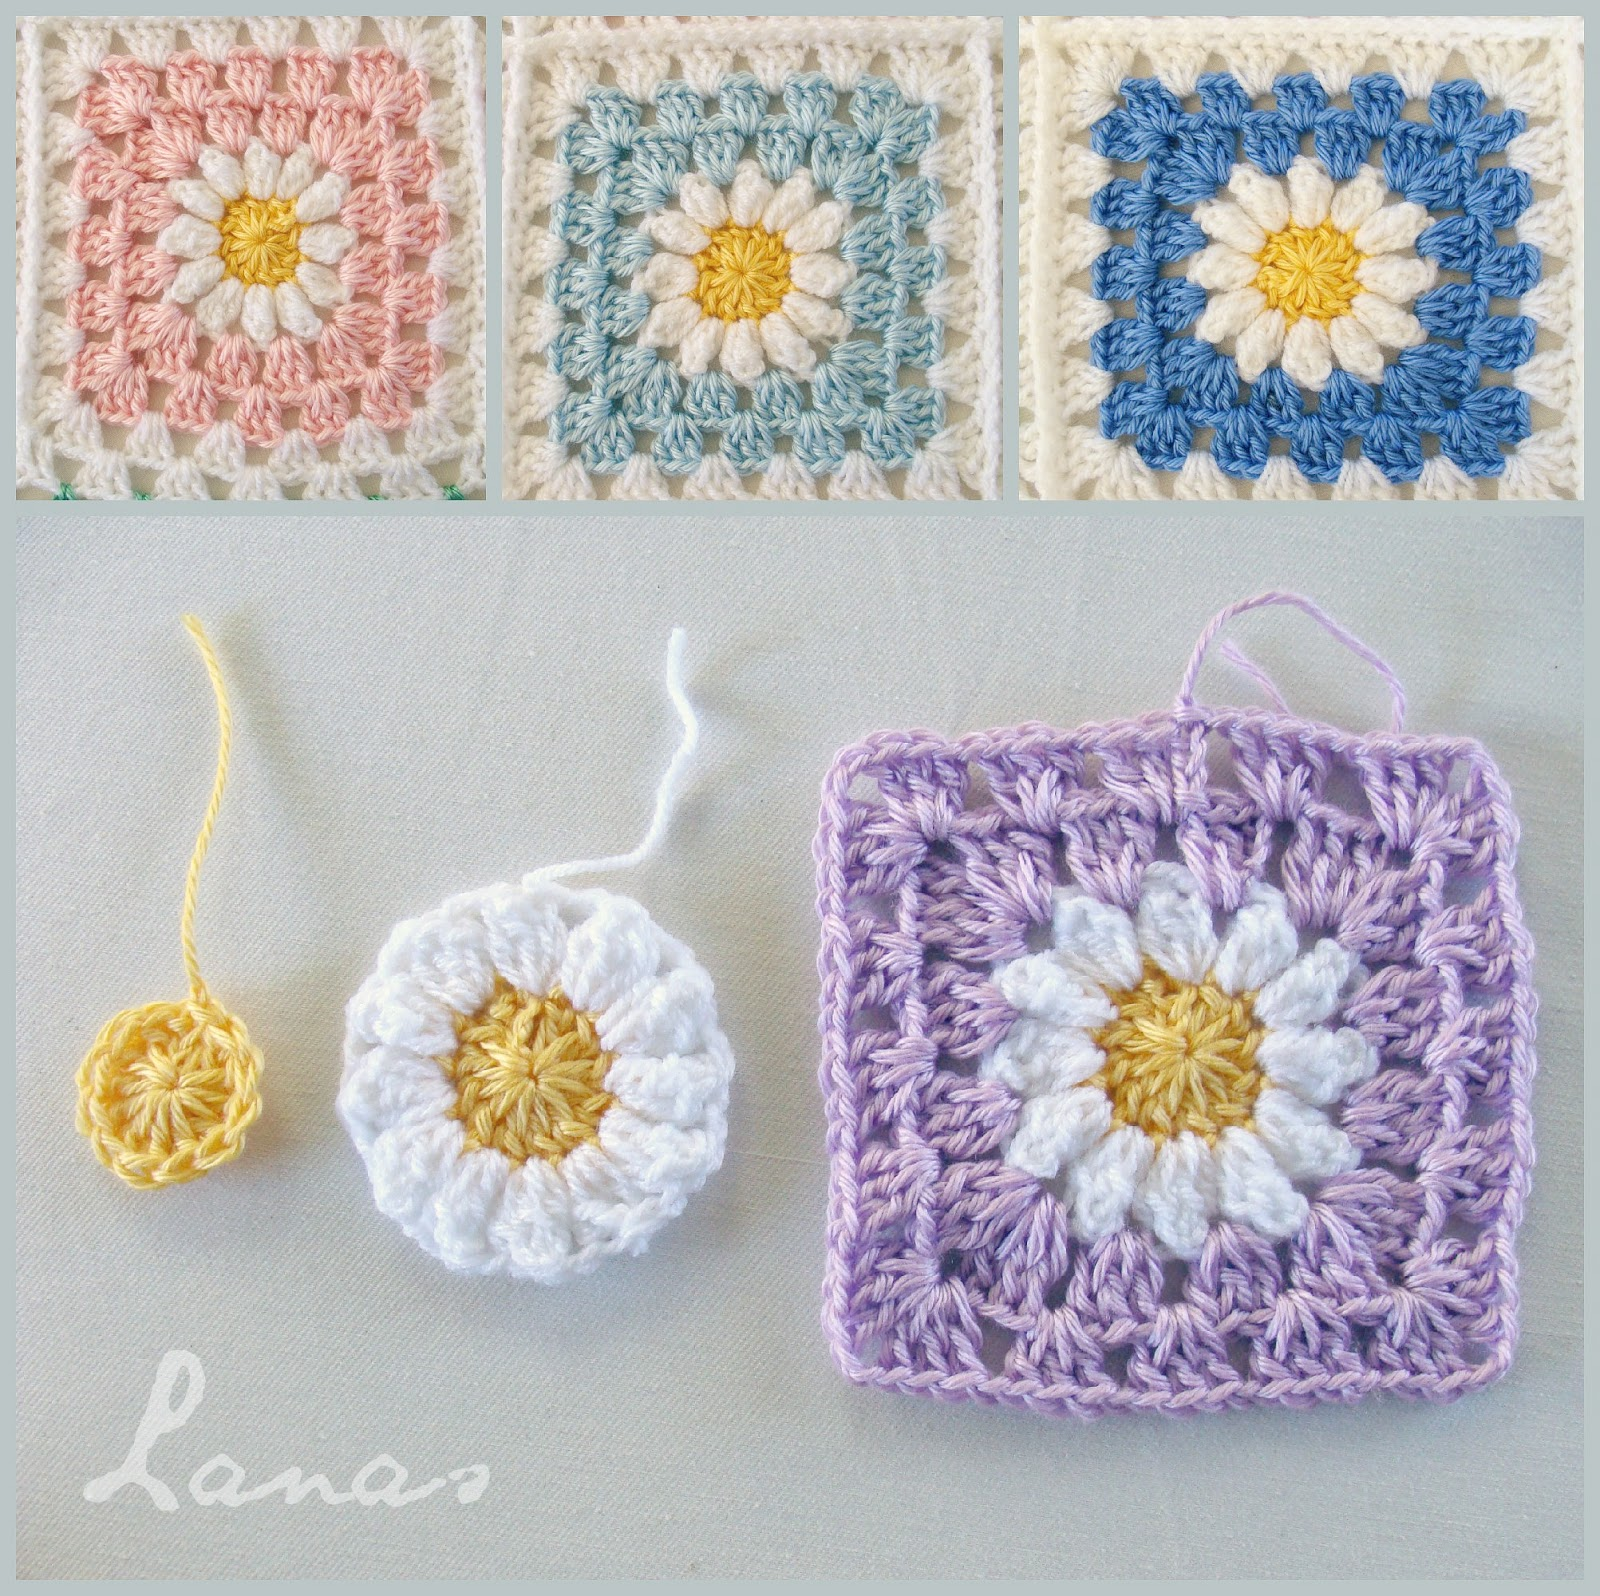 Lanas de ana daisy blanket all daisies have white petals and a yellow center the flower then is turned into a granny square izmirmasajfo